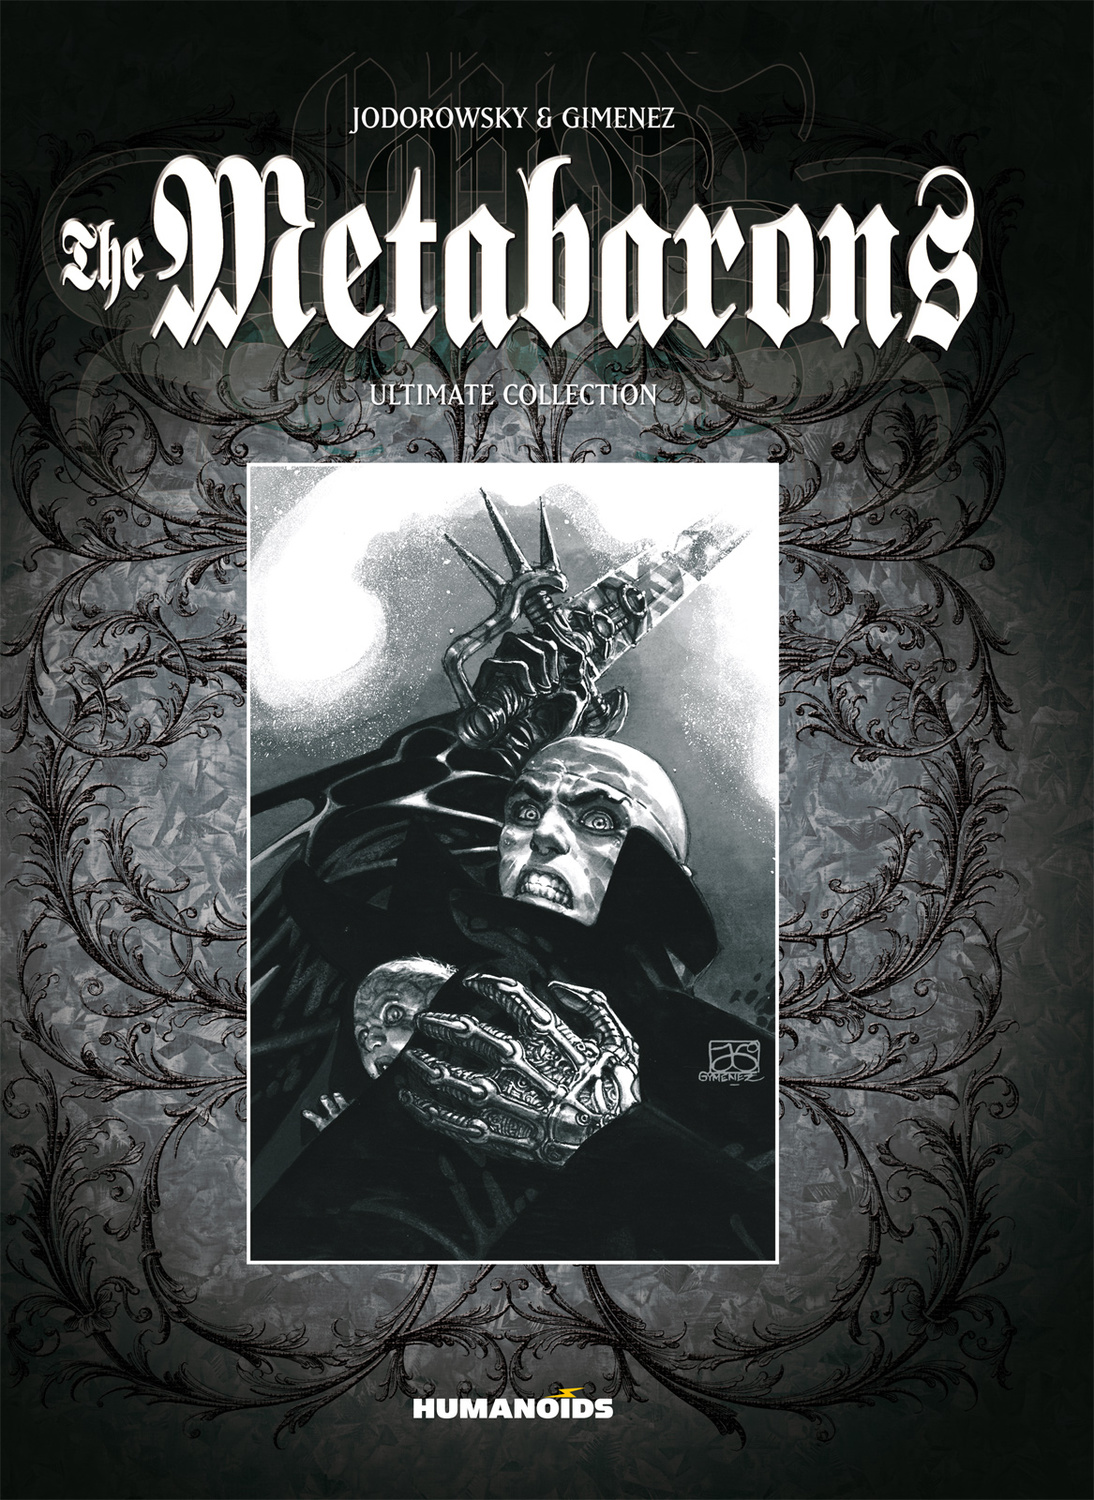 The Metabarons : Ultimate Collection - Oversized Deluxe Edition